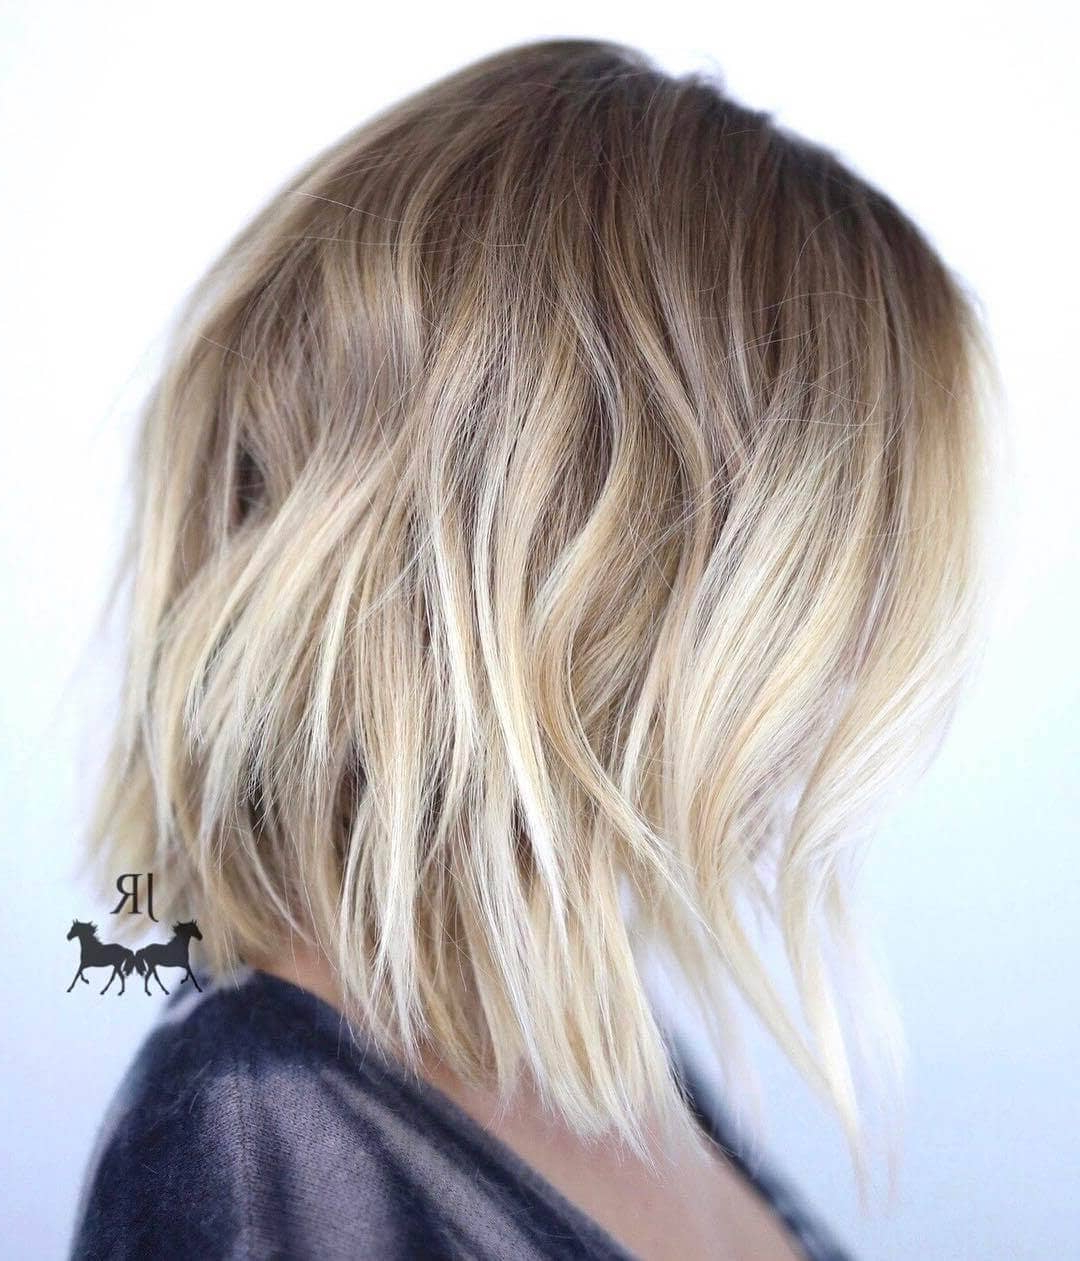 50 Fresh Short Blonde Hair Ideas To Update Your Style In 2018 With Regard To Dirty Blonde Pixie Hairstyles With Bright Highlights (View 18 of 20)